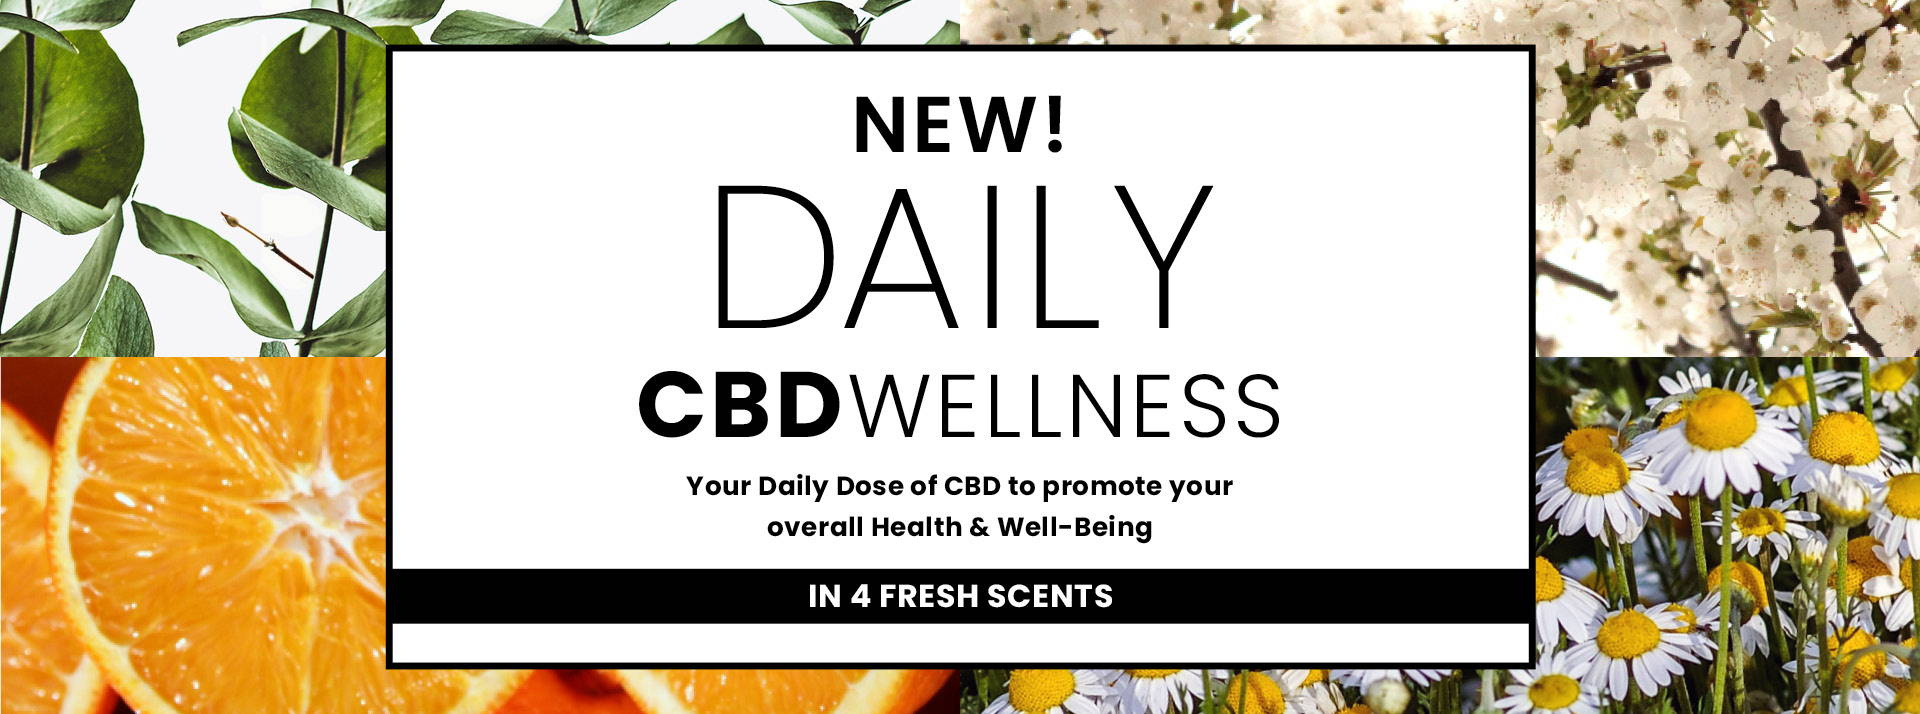 New Daily Wellness Your Daily dose of CBD to promote your overall health and well-being